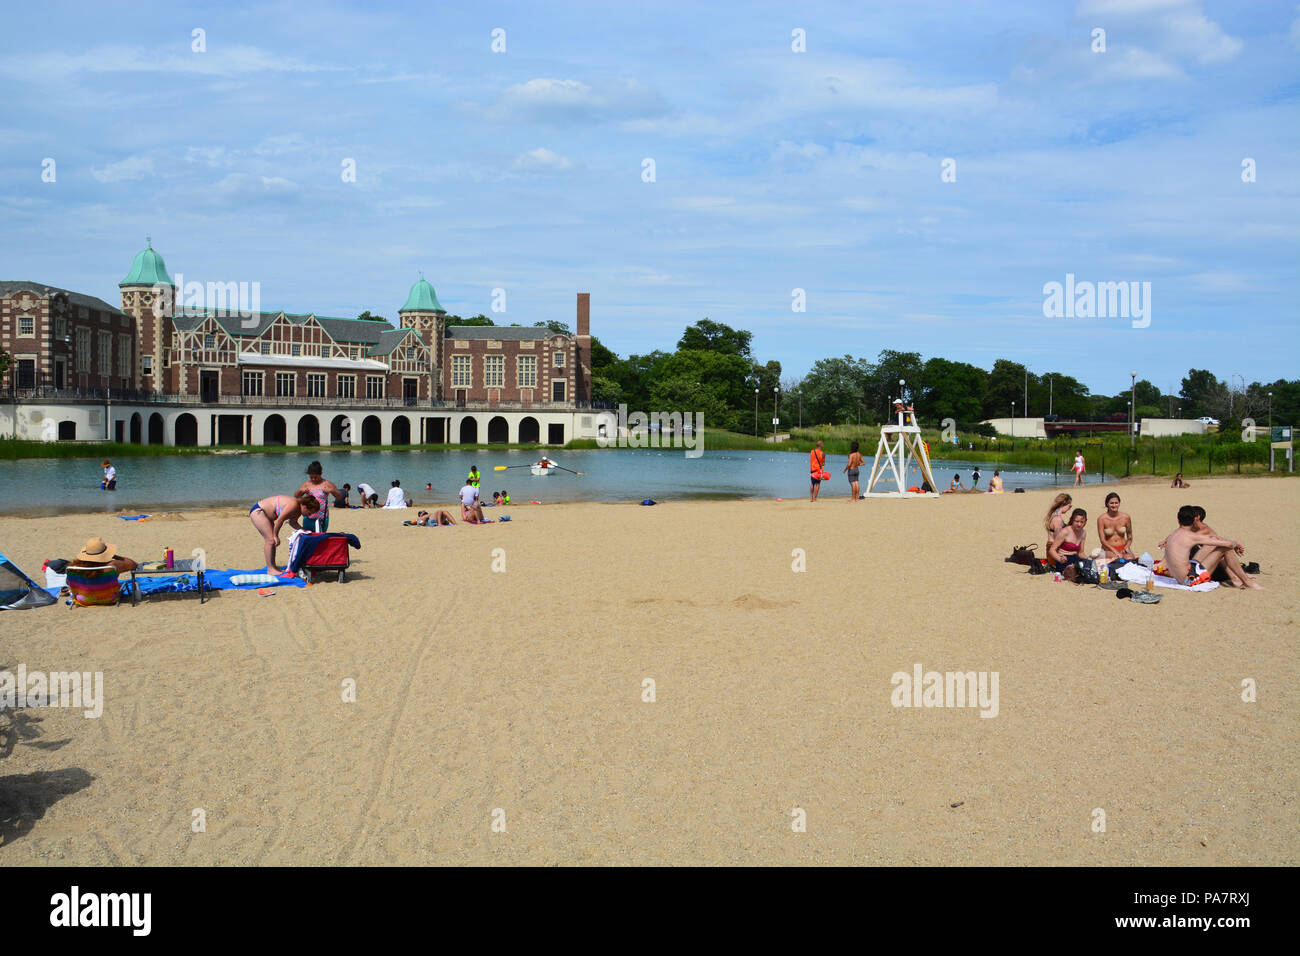 The inland lagoon beach and historic boathouse in Chicago's west side Humboldt Park neighborhood. - Stock Image